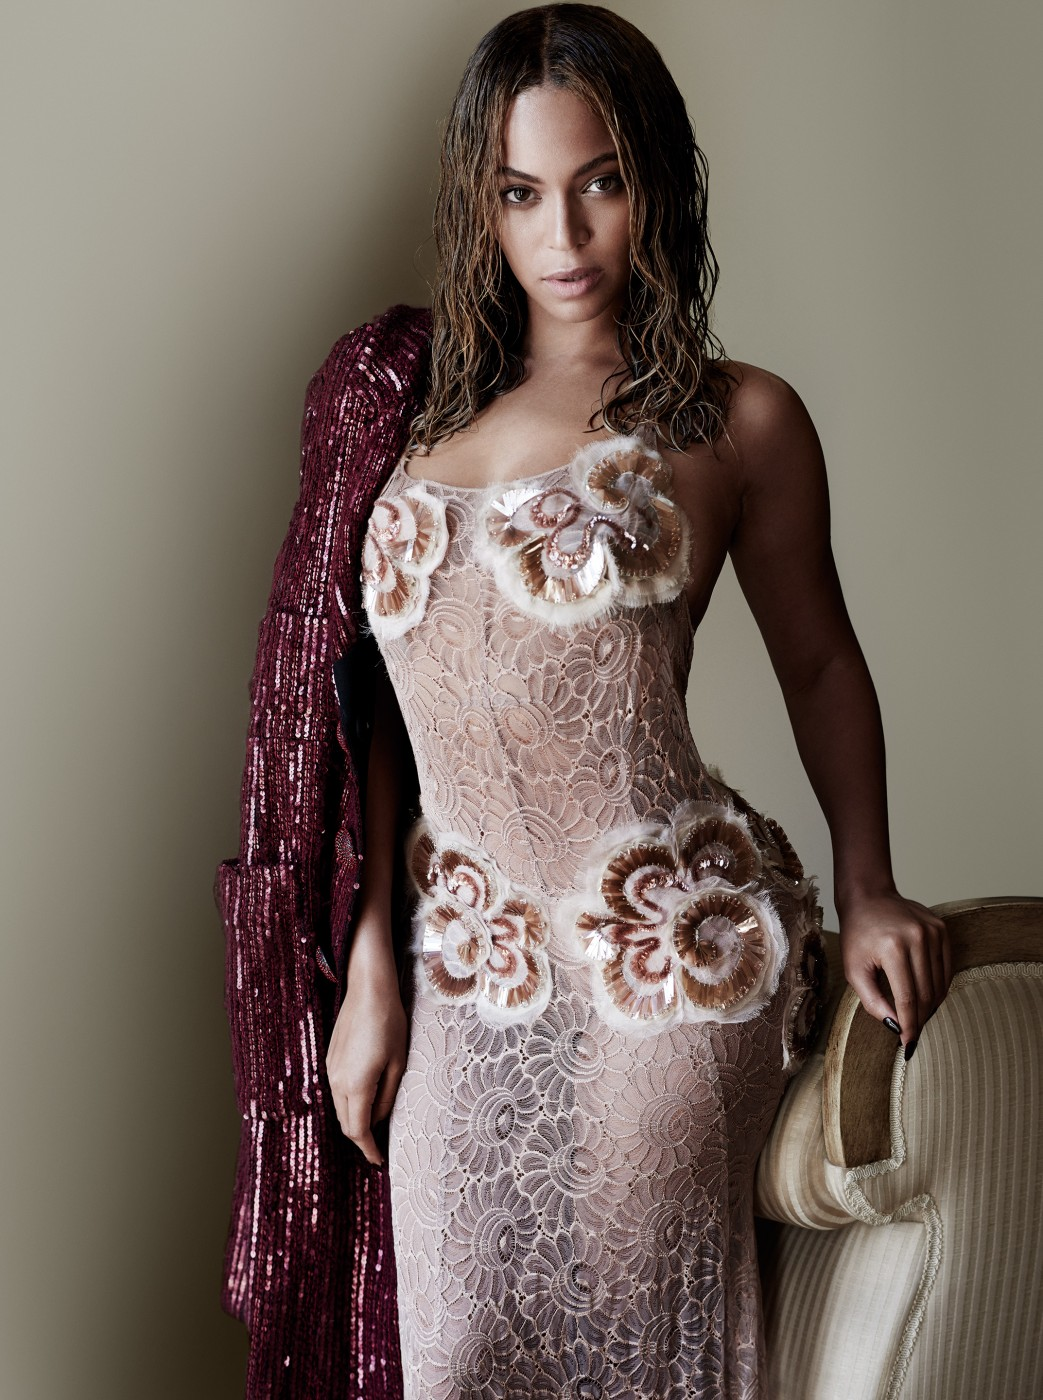 Concierge4fashion The Most Beautiful Girl In The World: Concierge4Fashion: Beyoncé By Mario Testino